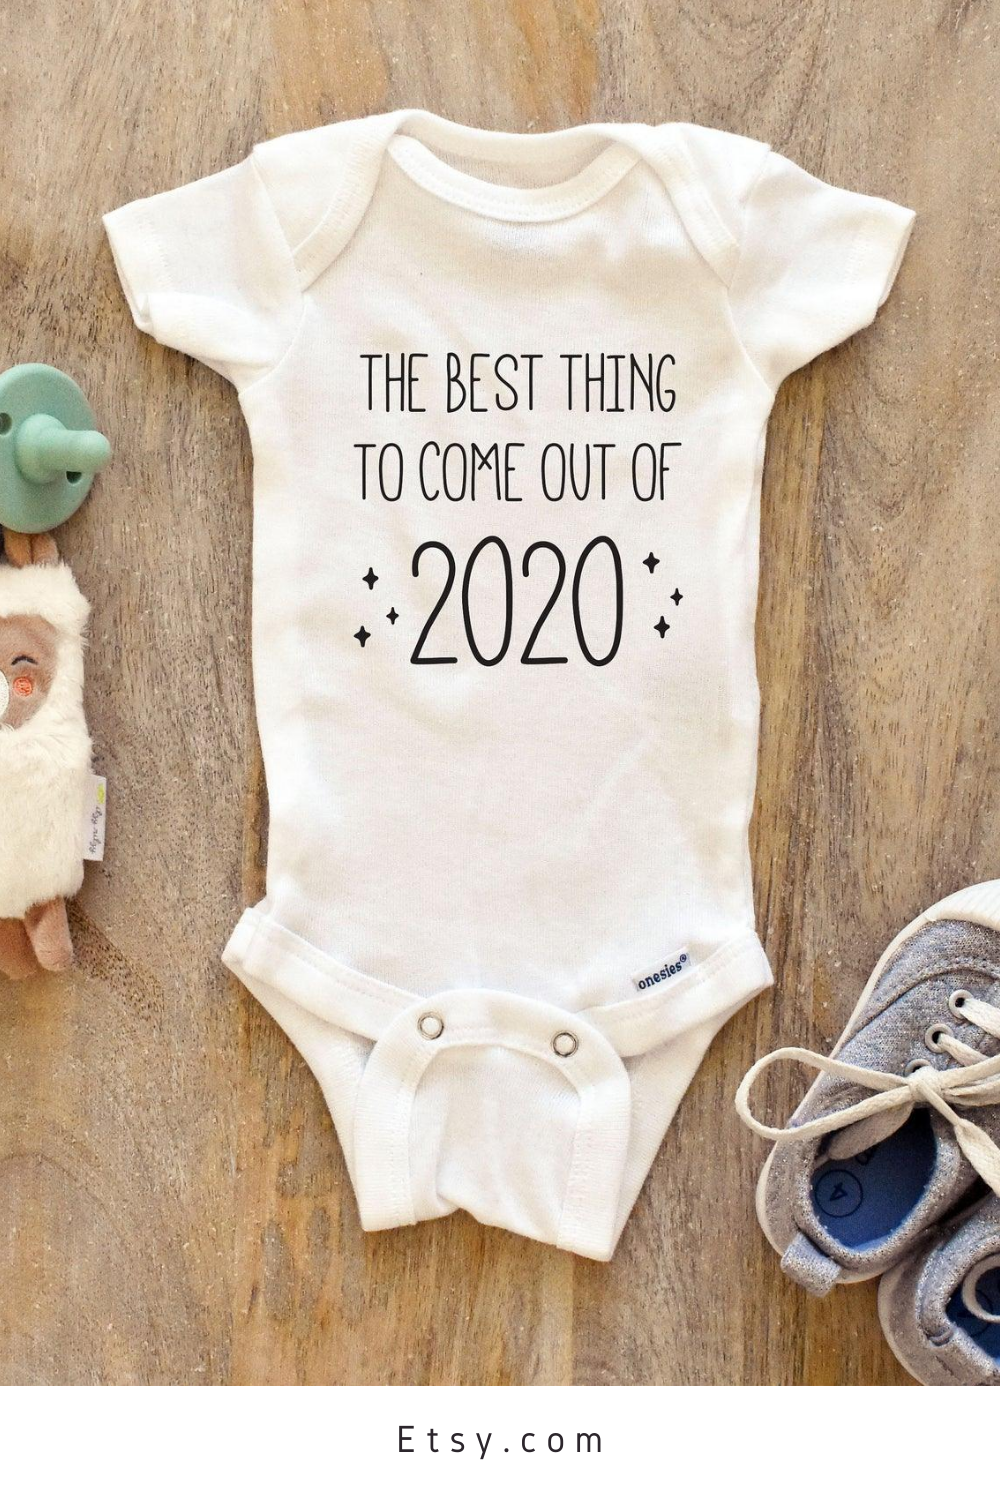 The Best Thing to Come Out of 6 Onesie®, Baby Boy, Baby Girl